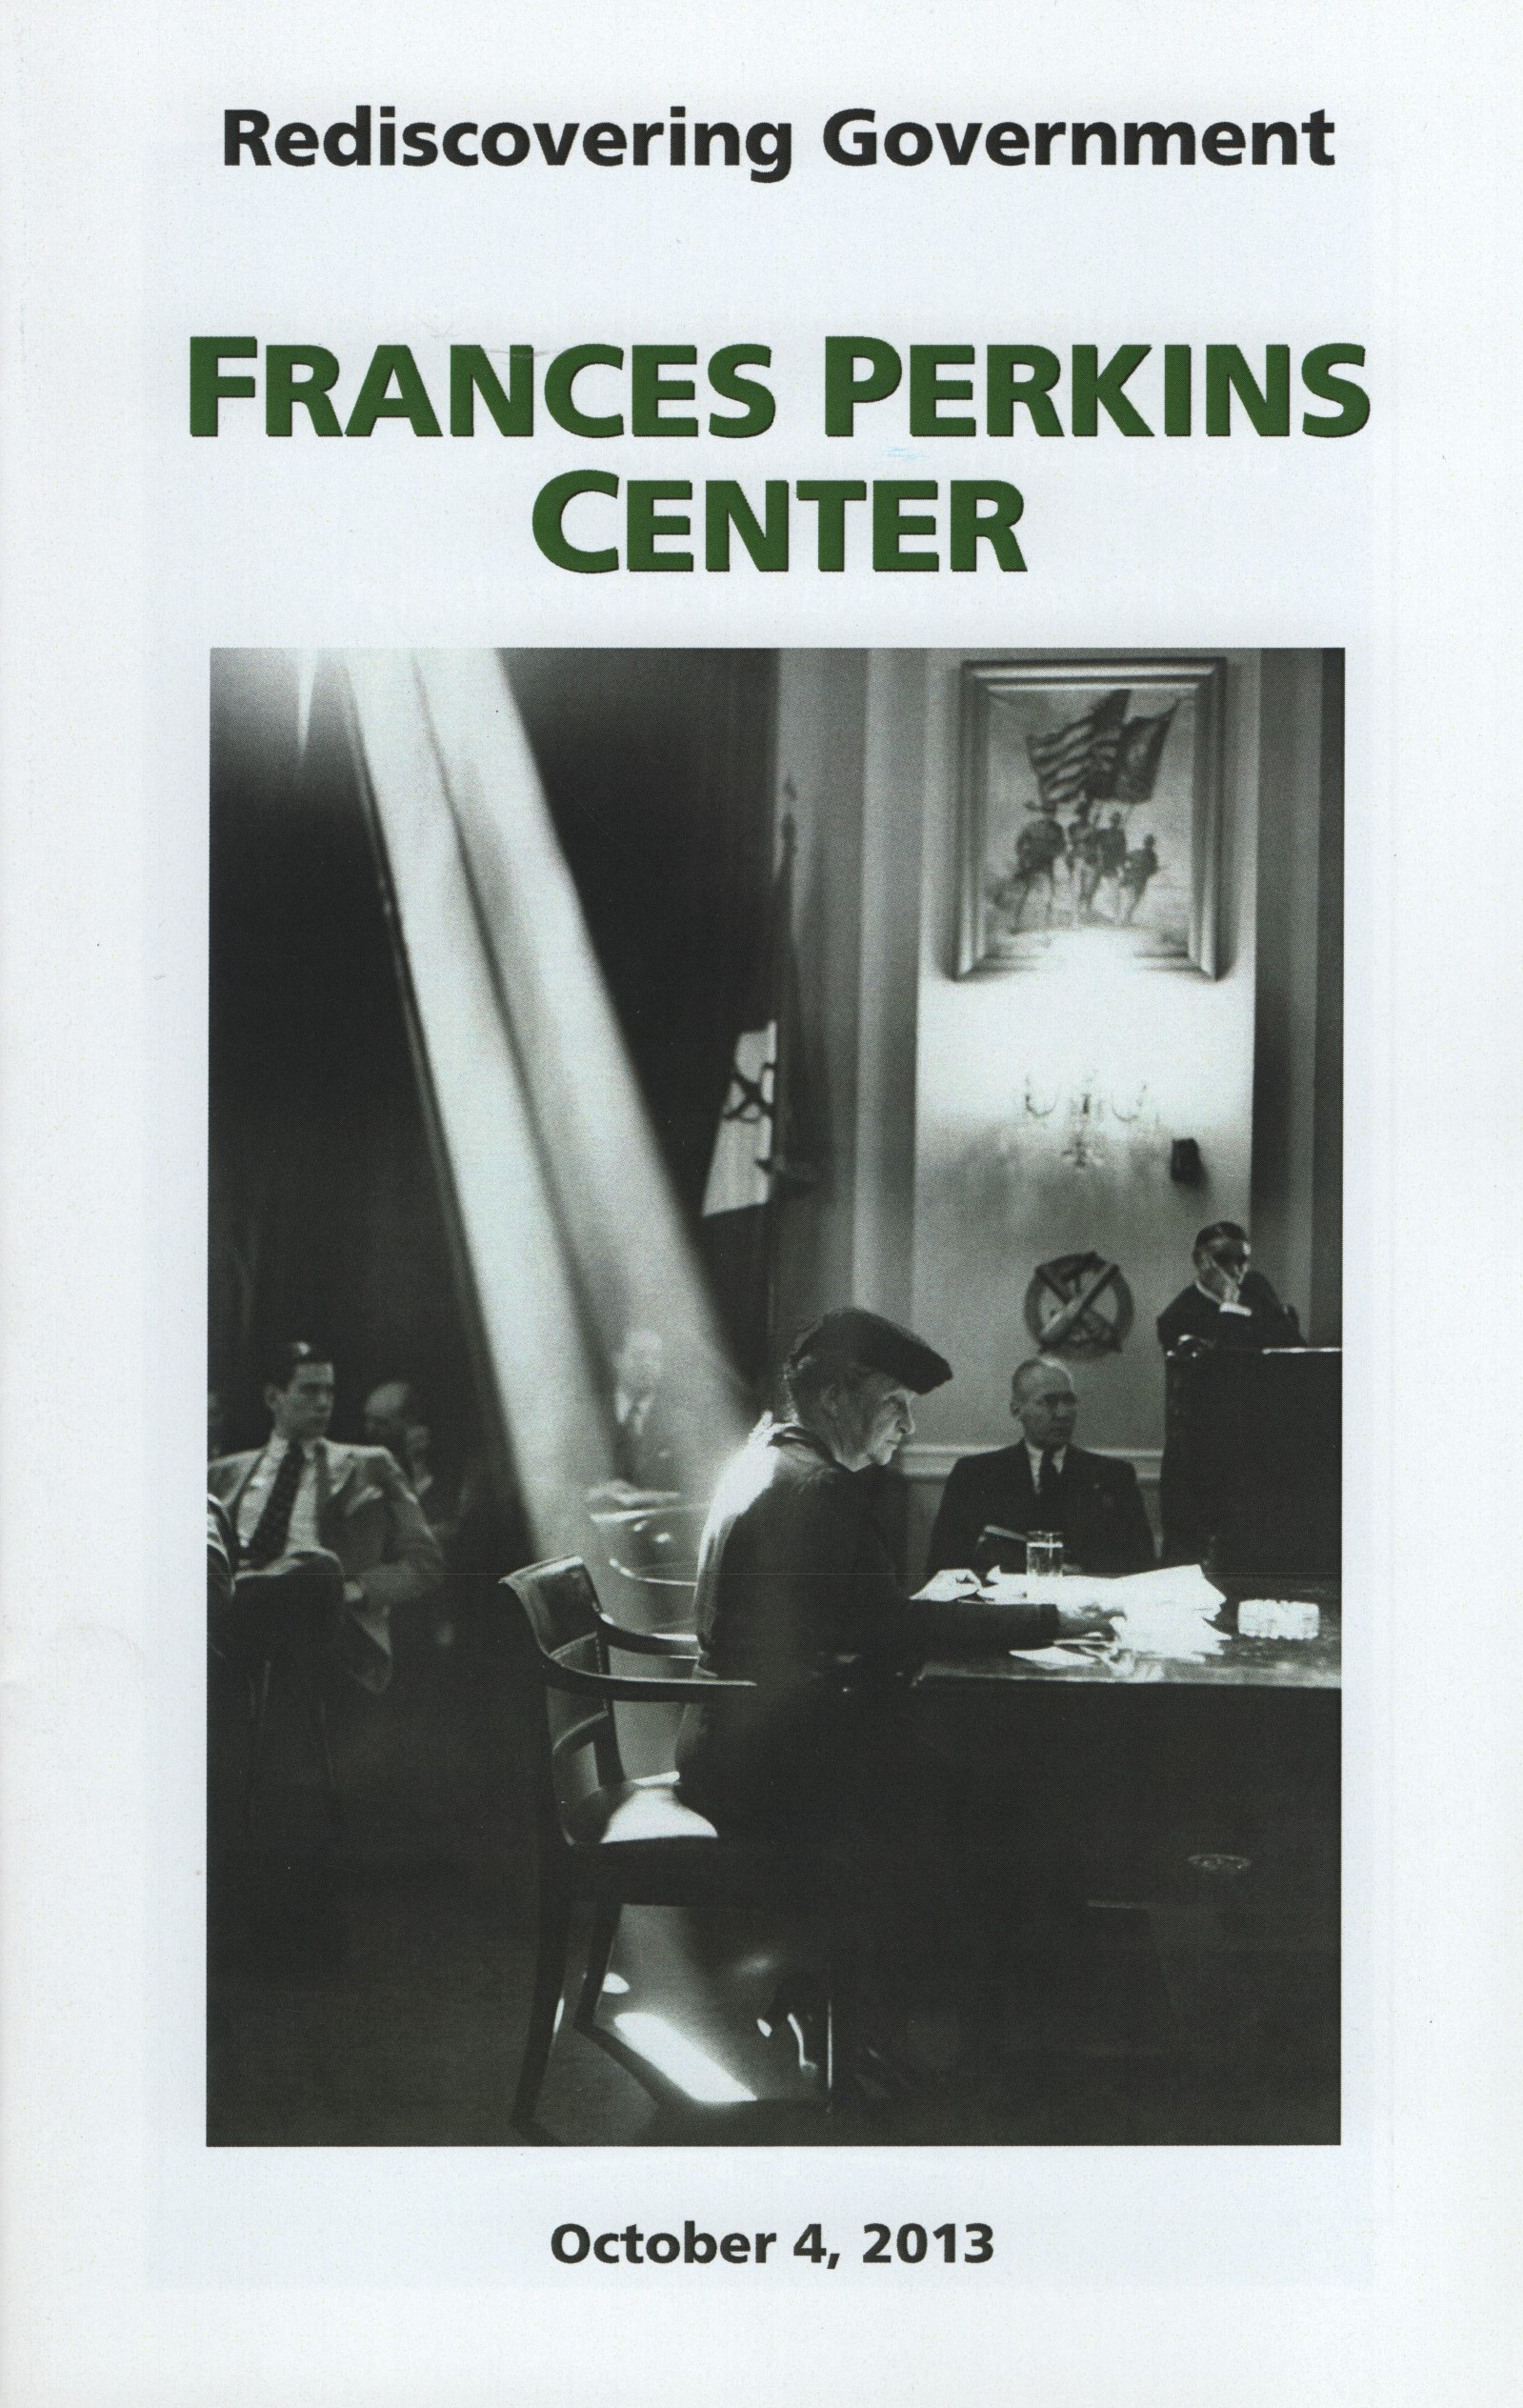 Rediscovering Photography On Summer >> Frances Perkins Center Rediscovering Government